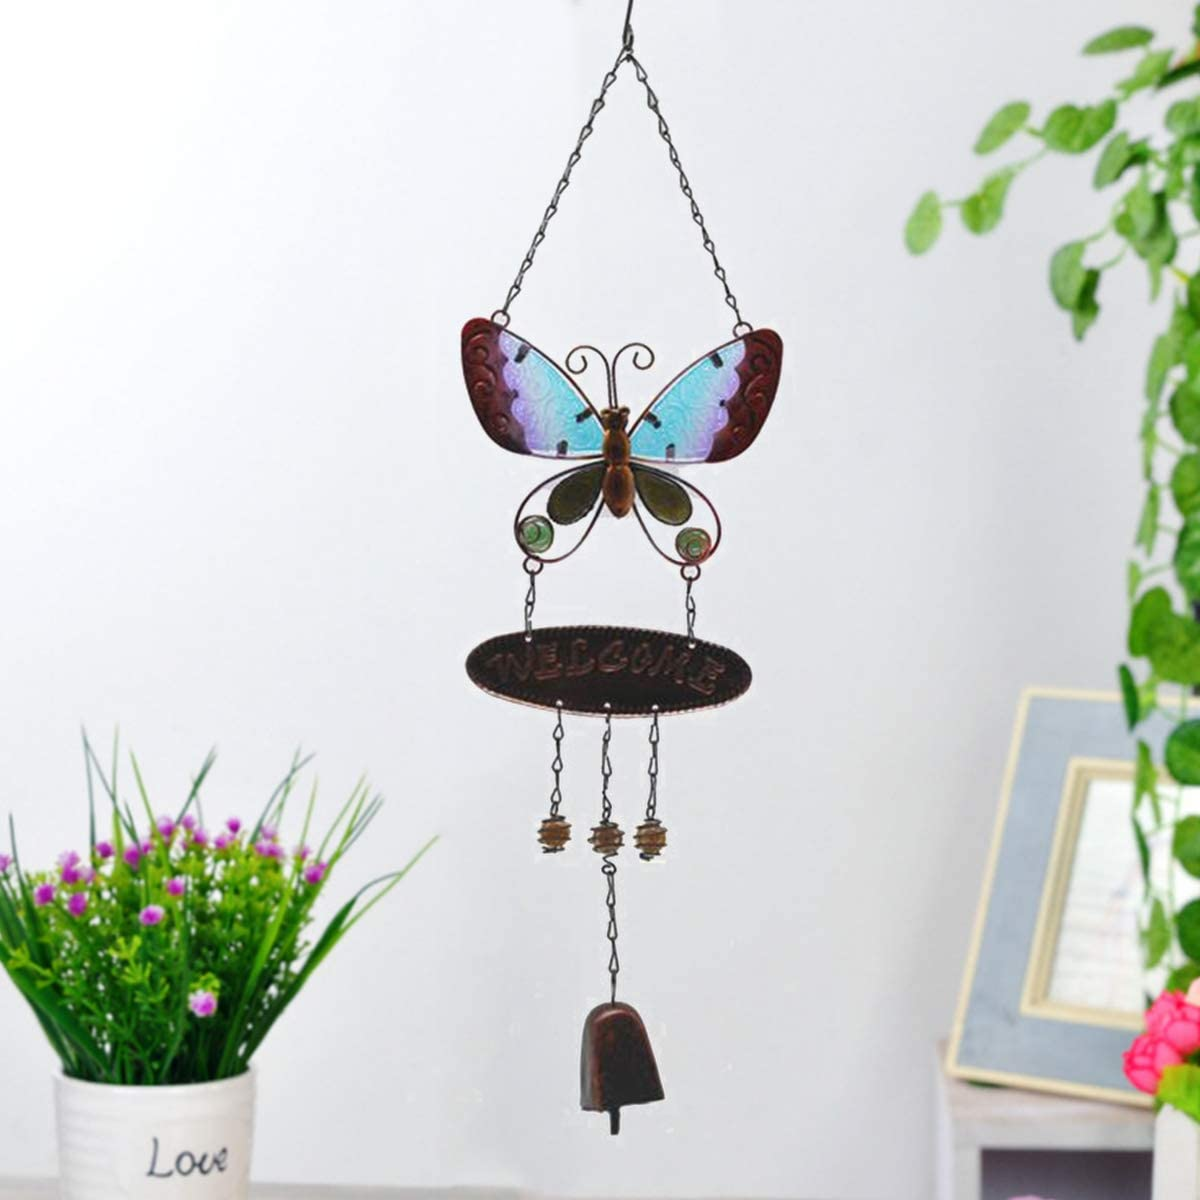 JOXJOZ Butterfly Wind Chimes Outdoor/Indoor Metal & Stained Glass Wind Chime Wall Hanging for Home,Party,Festival Decor,Garden,Yard Decoration,Gift for Mom and Grandma (Blue)